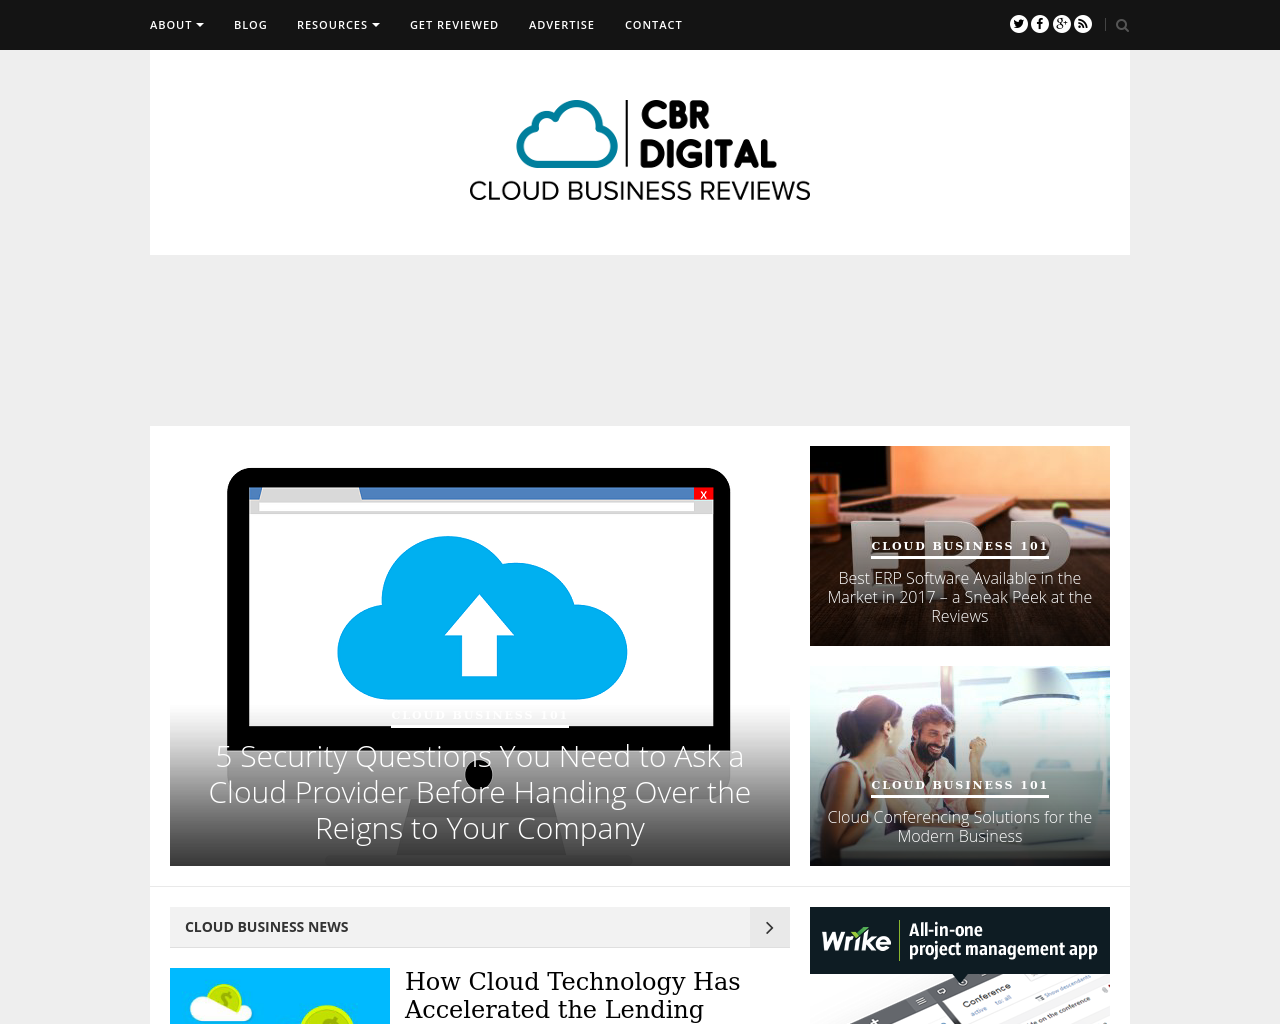 Cloud-Business-Review-Advertising-Reviews-Pricing